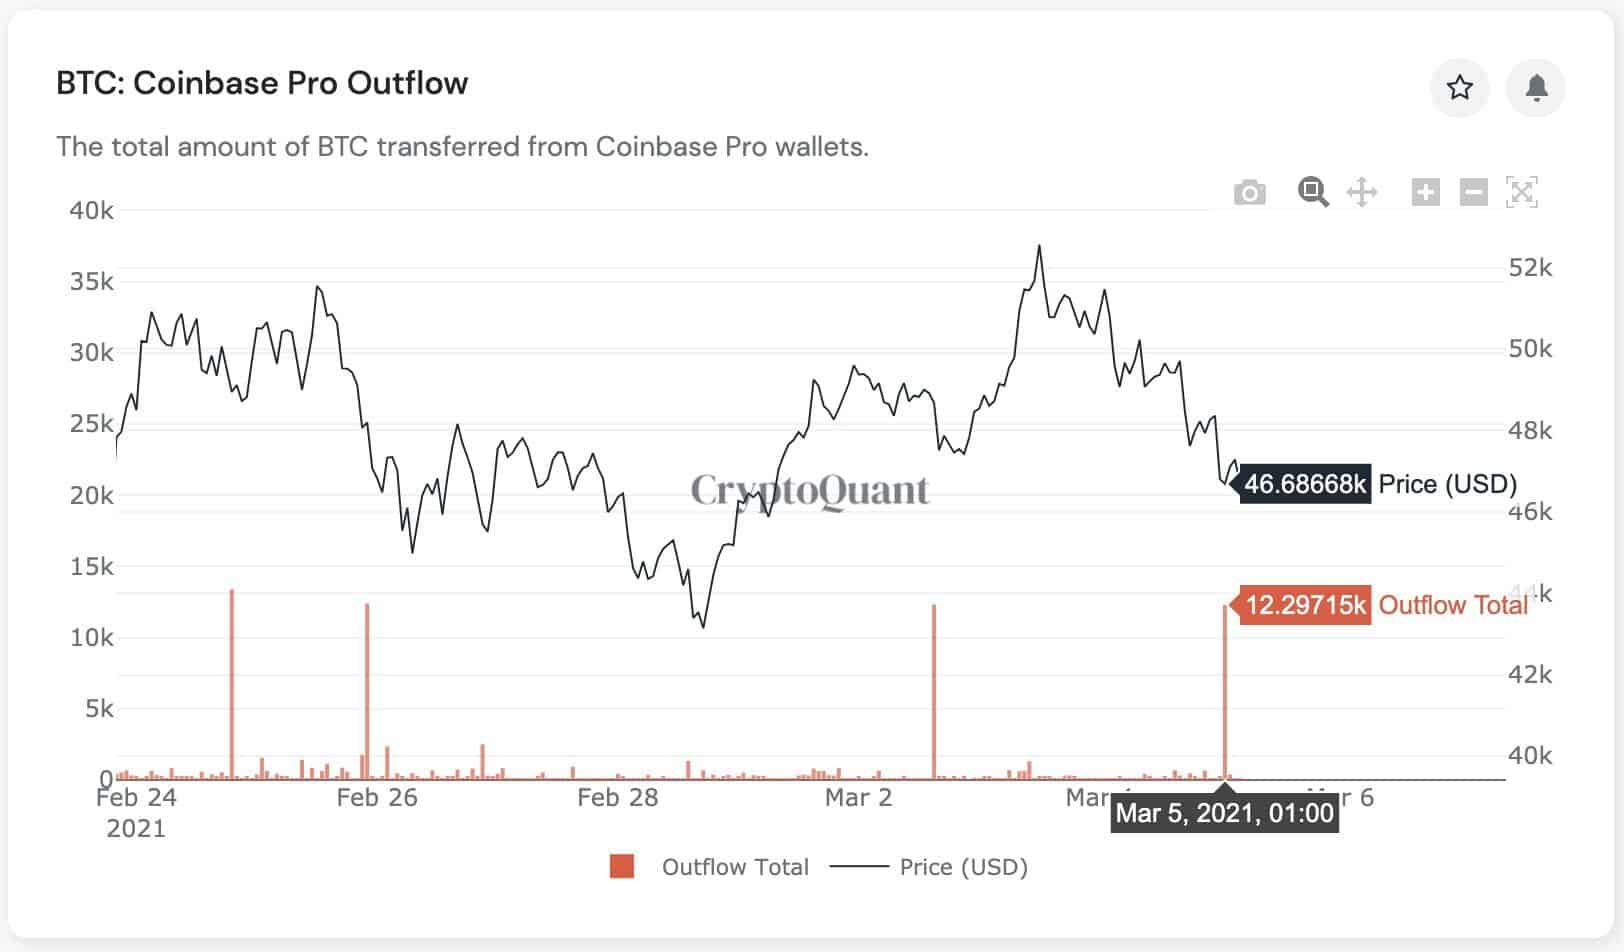 Coinbase BTC Outflows to Custody Wallets. Source: CryptoQuant